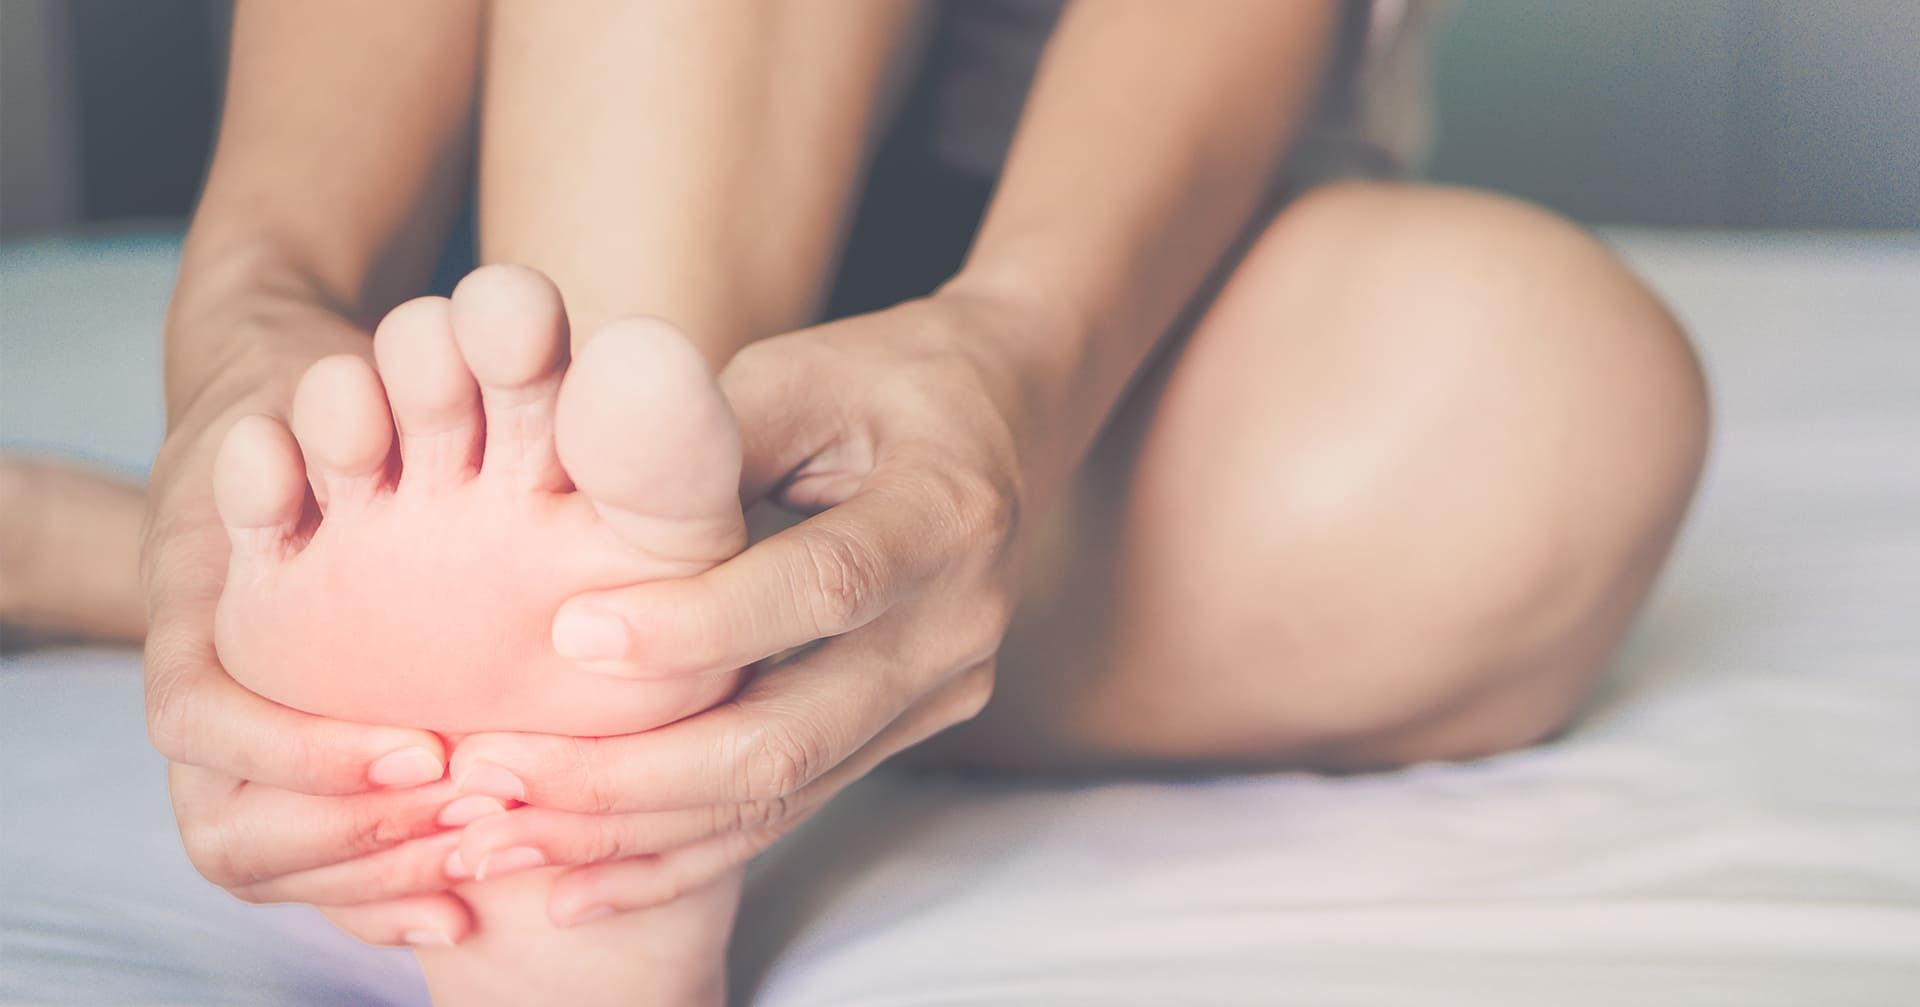 Do you have chronic foot pain? Call today for a consultation.